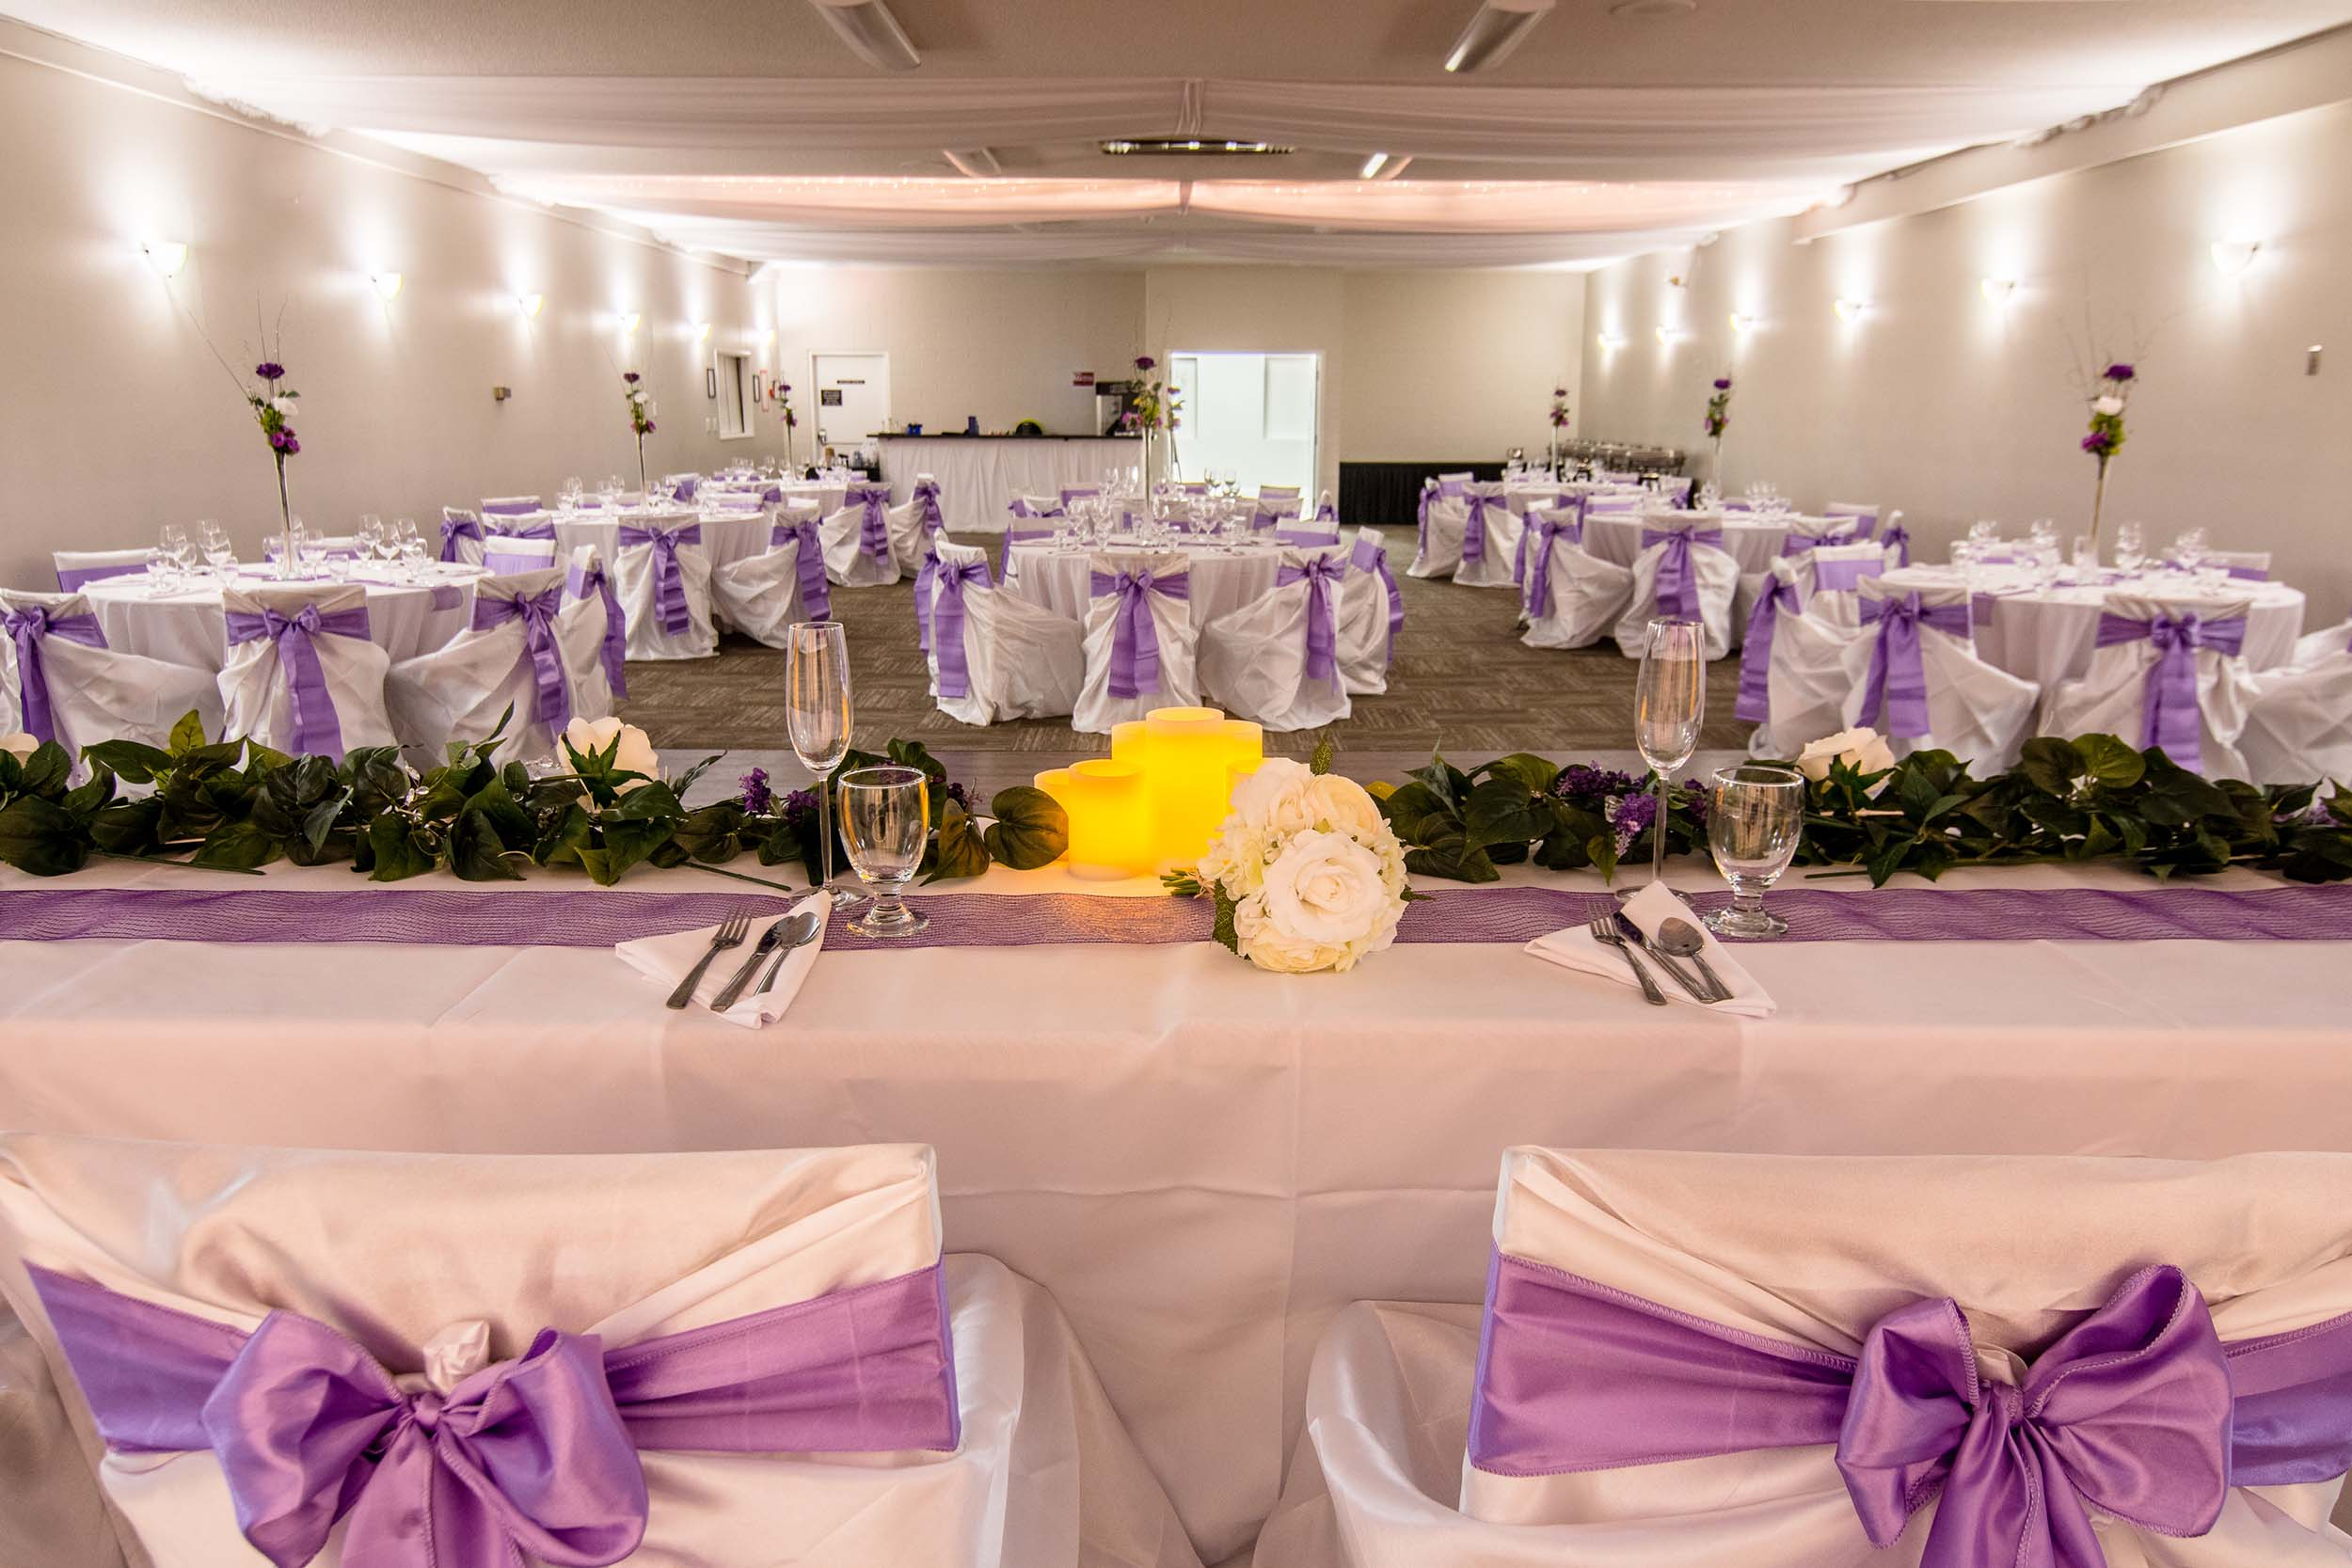 Banquet room decoration